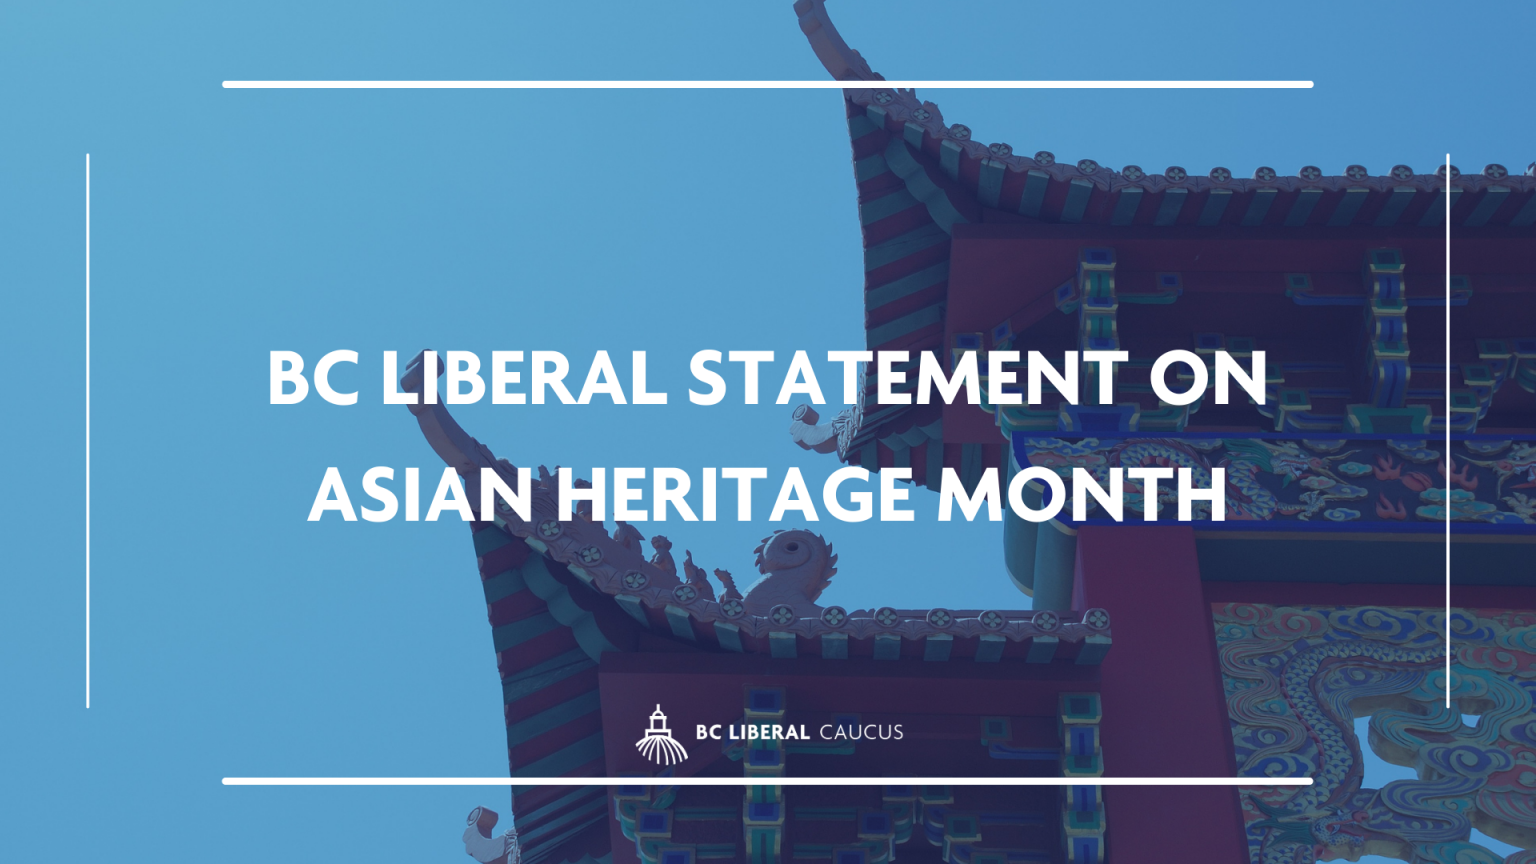 BC Liberal statement on Asian Heritage Month